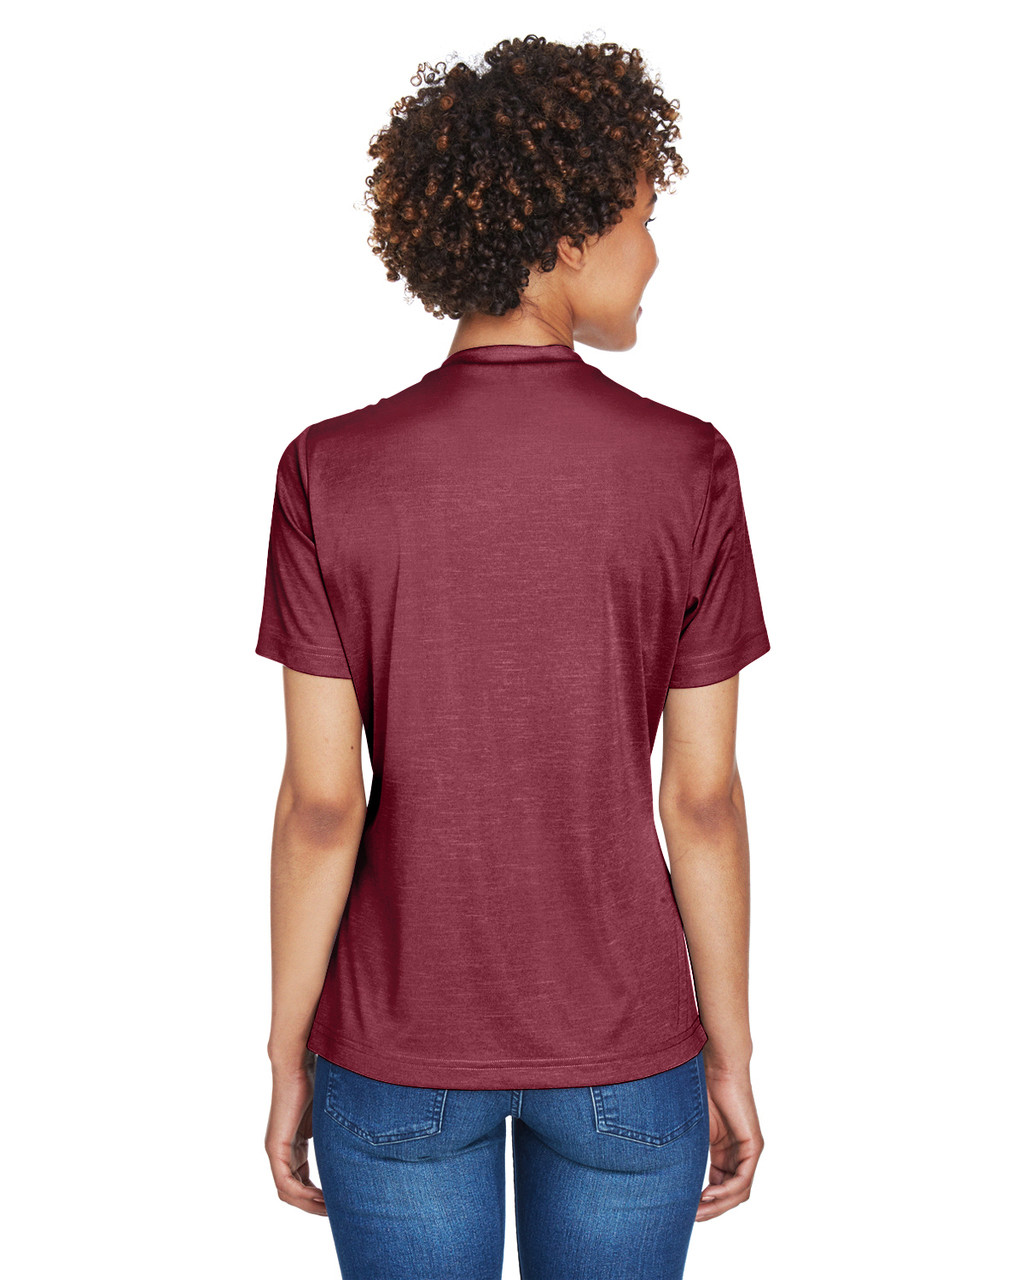 Sport Maroon Heather - Back, TT11HW Team 365 Ladies' Sonic Heather Performance T-Shirt | BlankClothing.ca